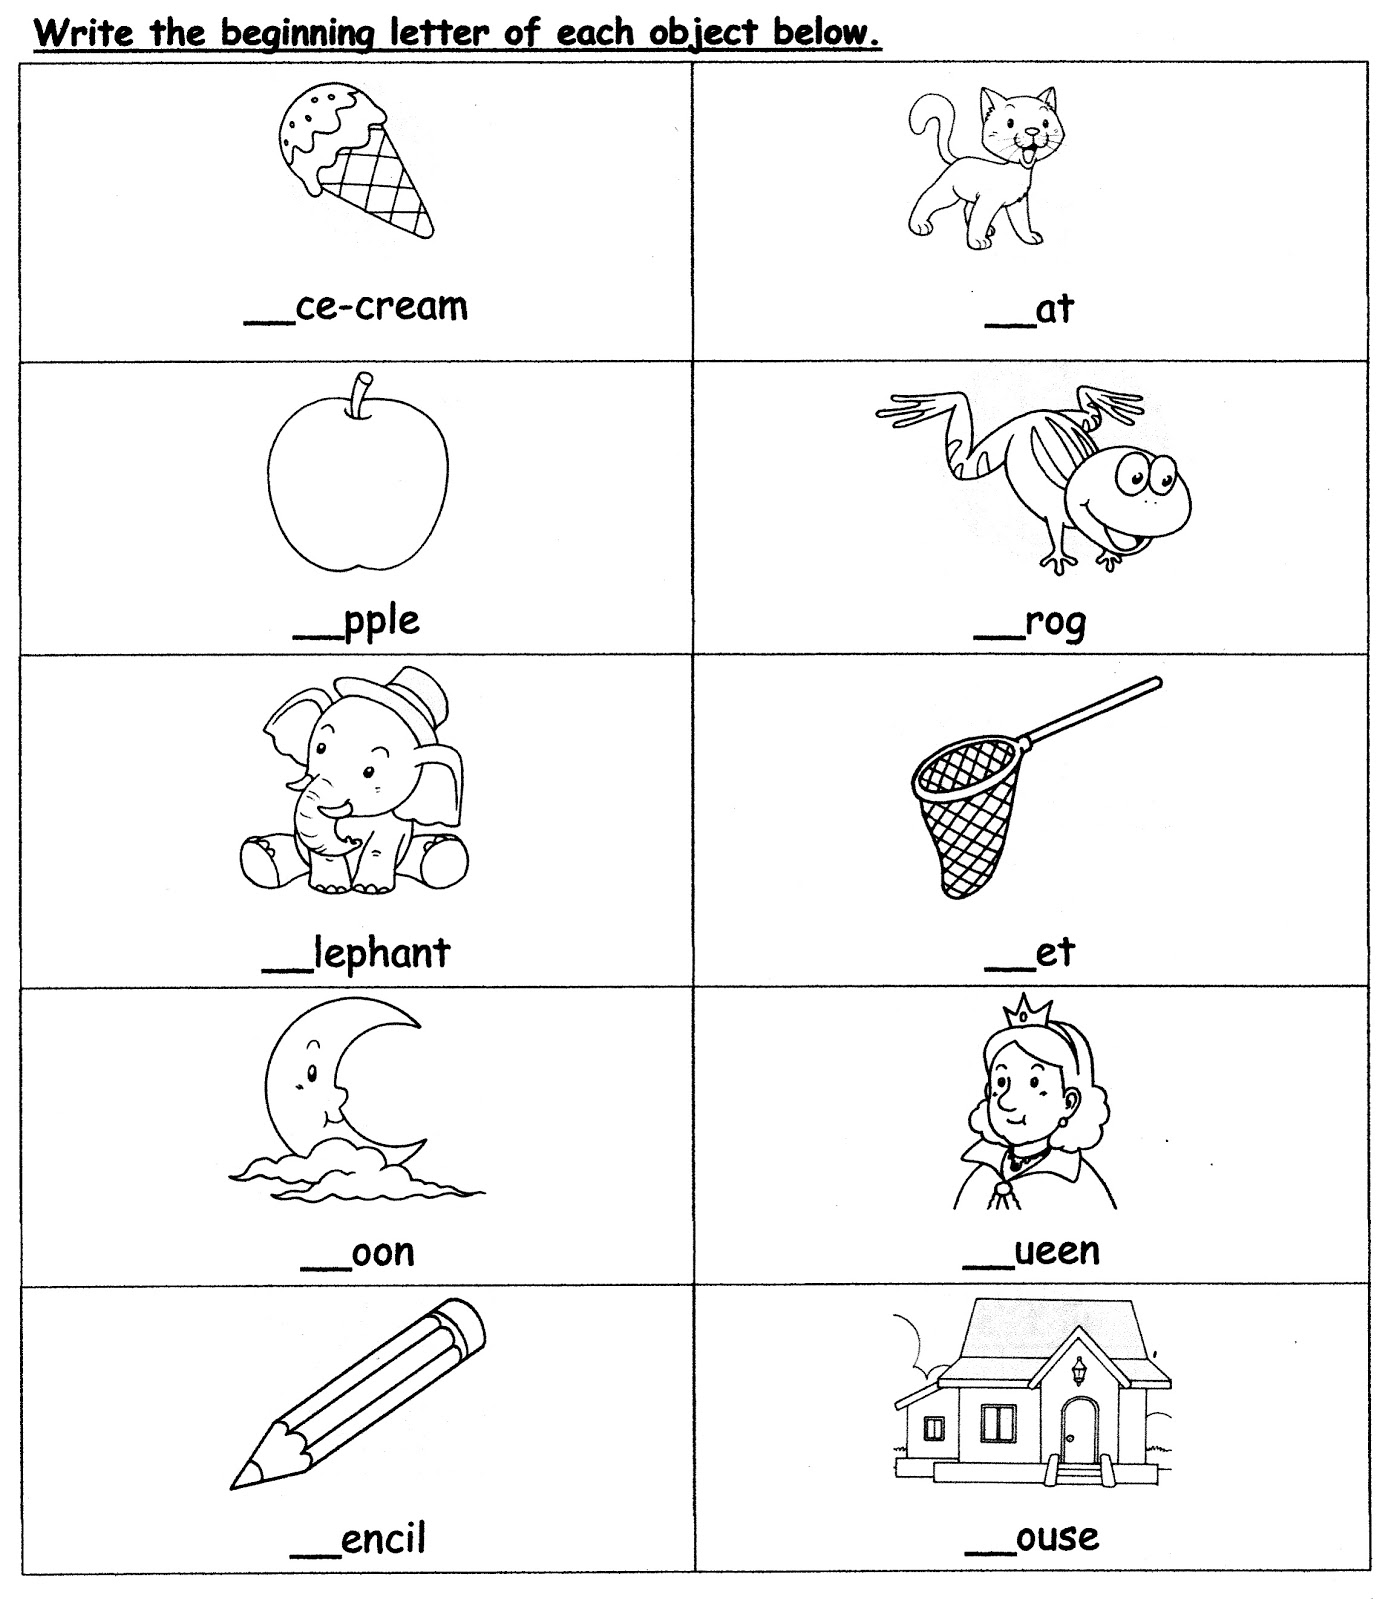 Worksheet English Year 5 Kssr